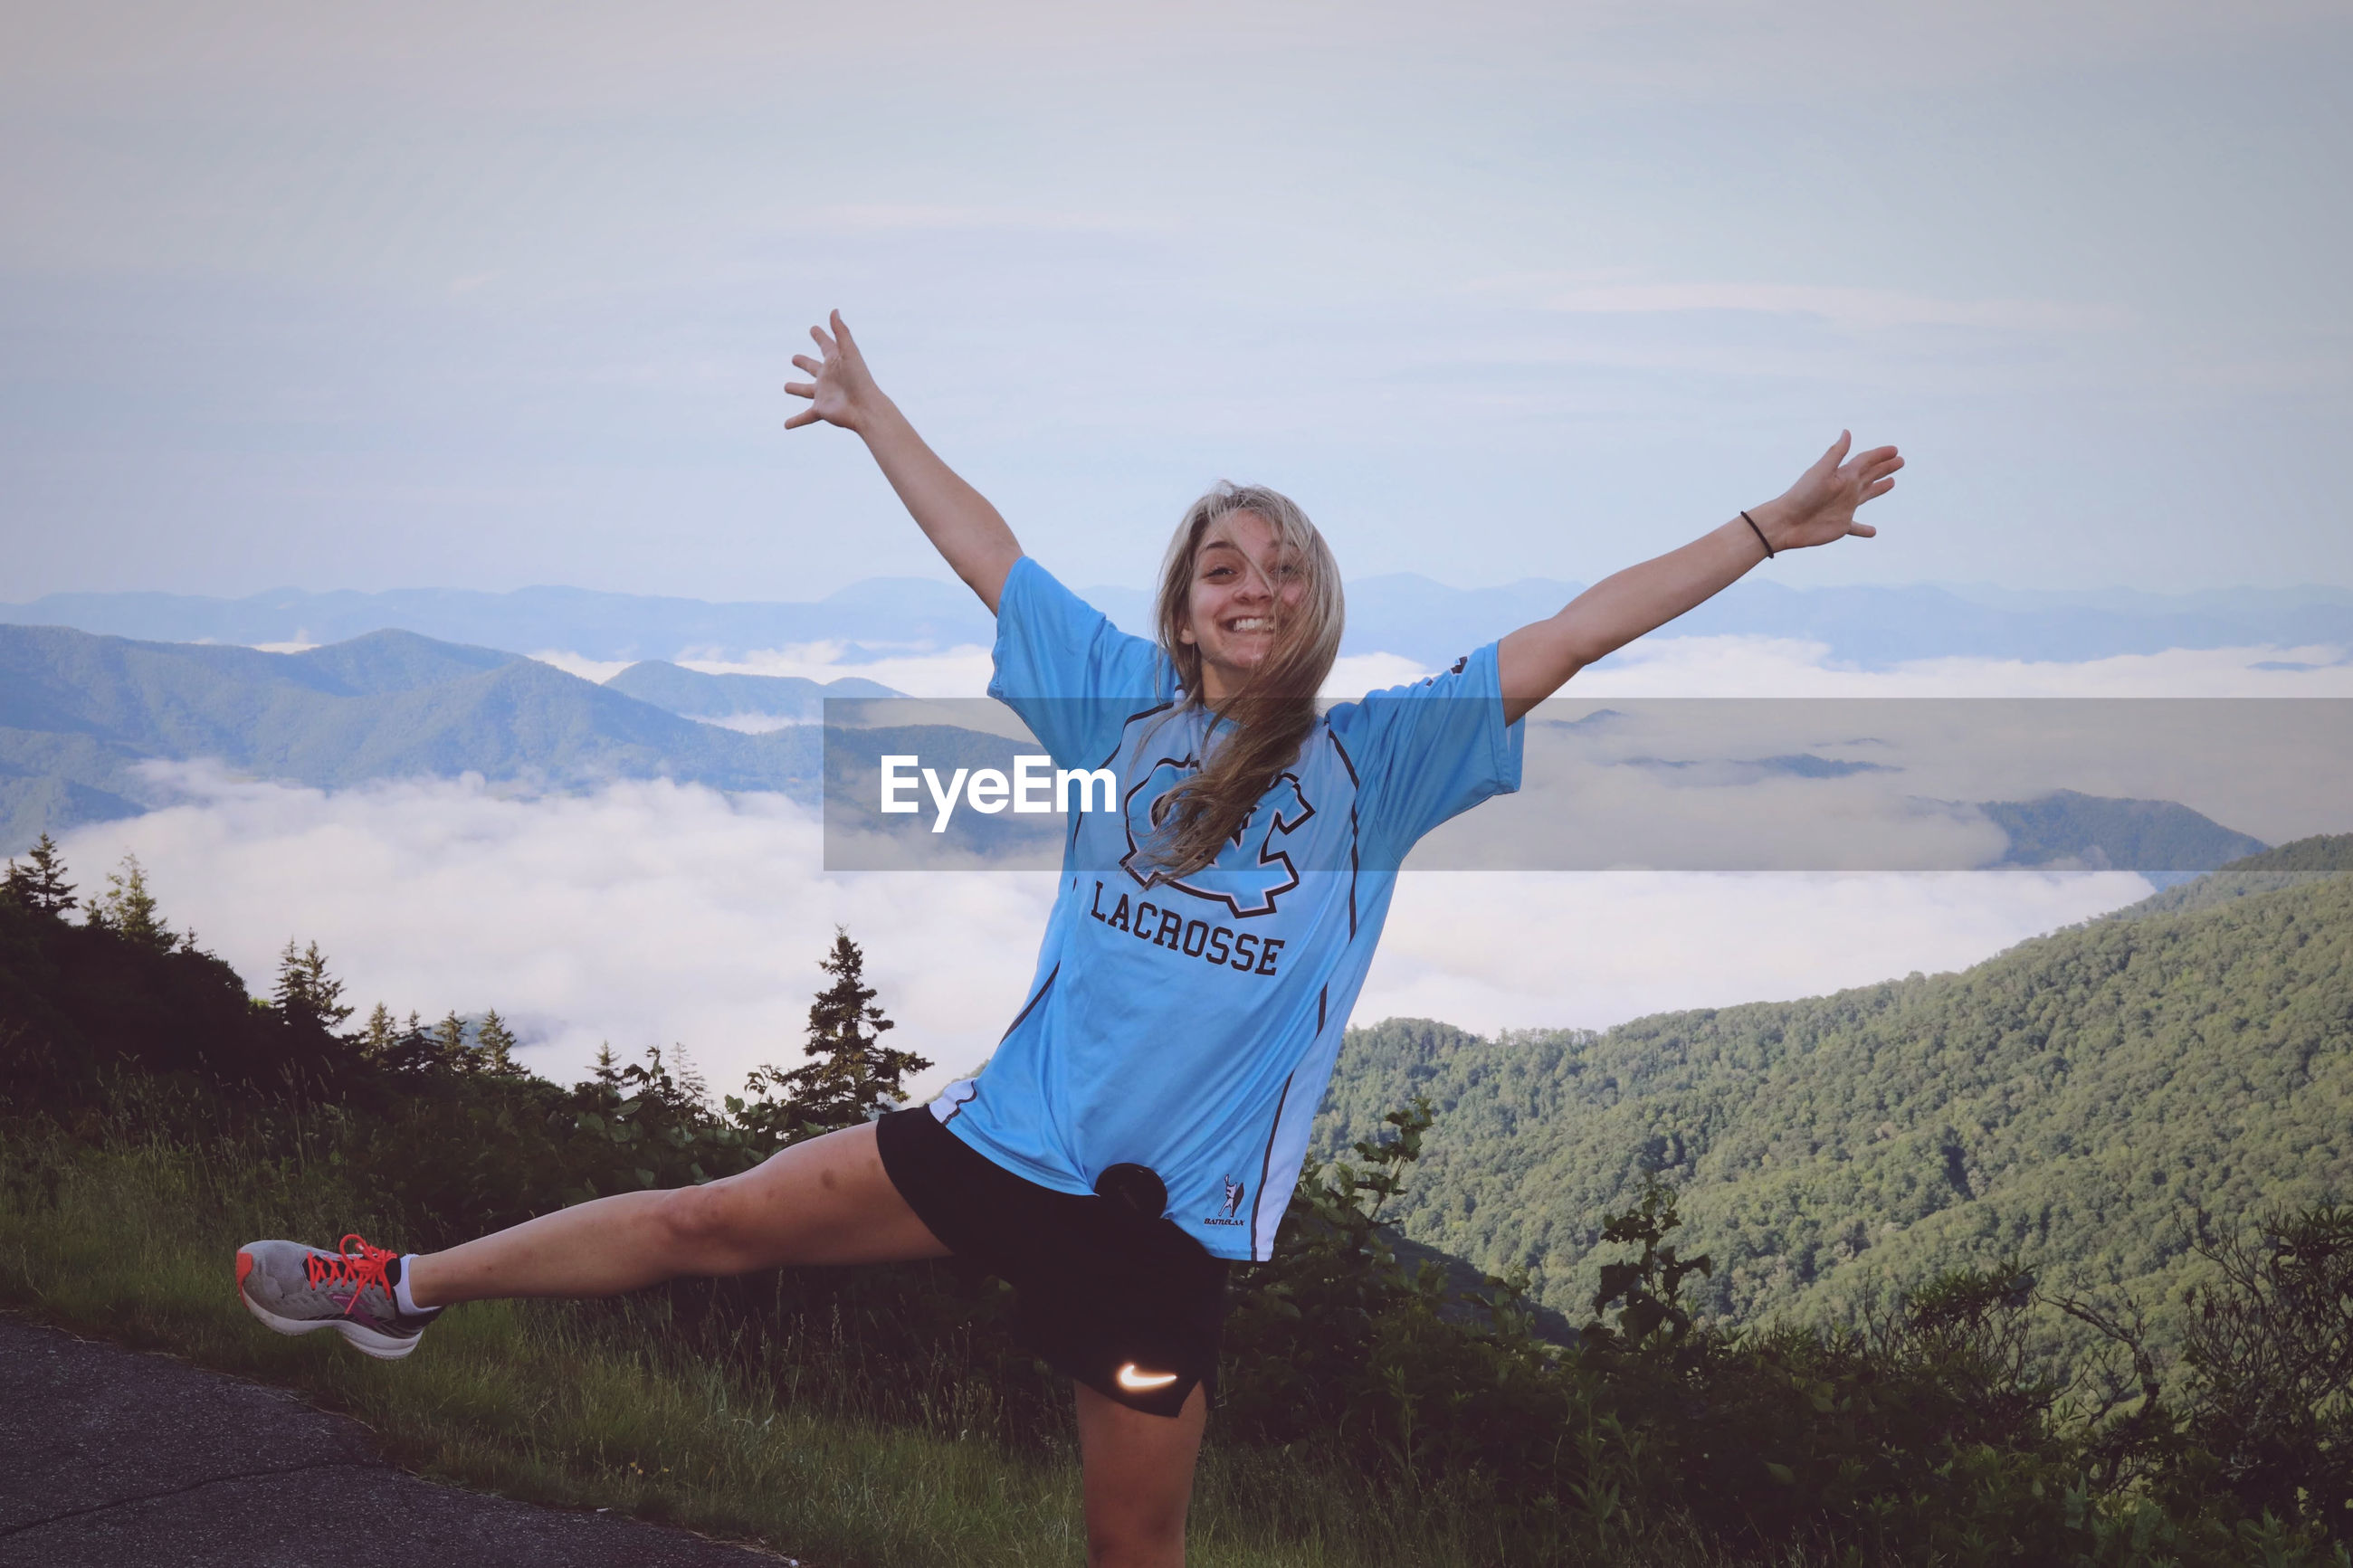 WOMAN WITH ARMS RAISED AGAINST MOUNTAIN RANGE